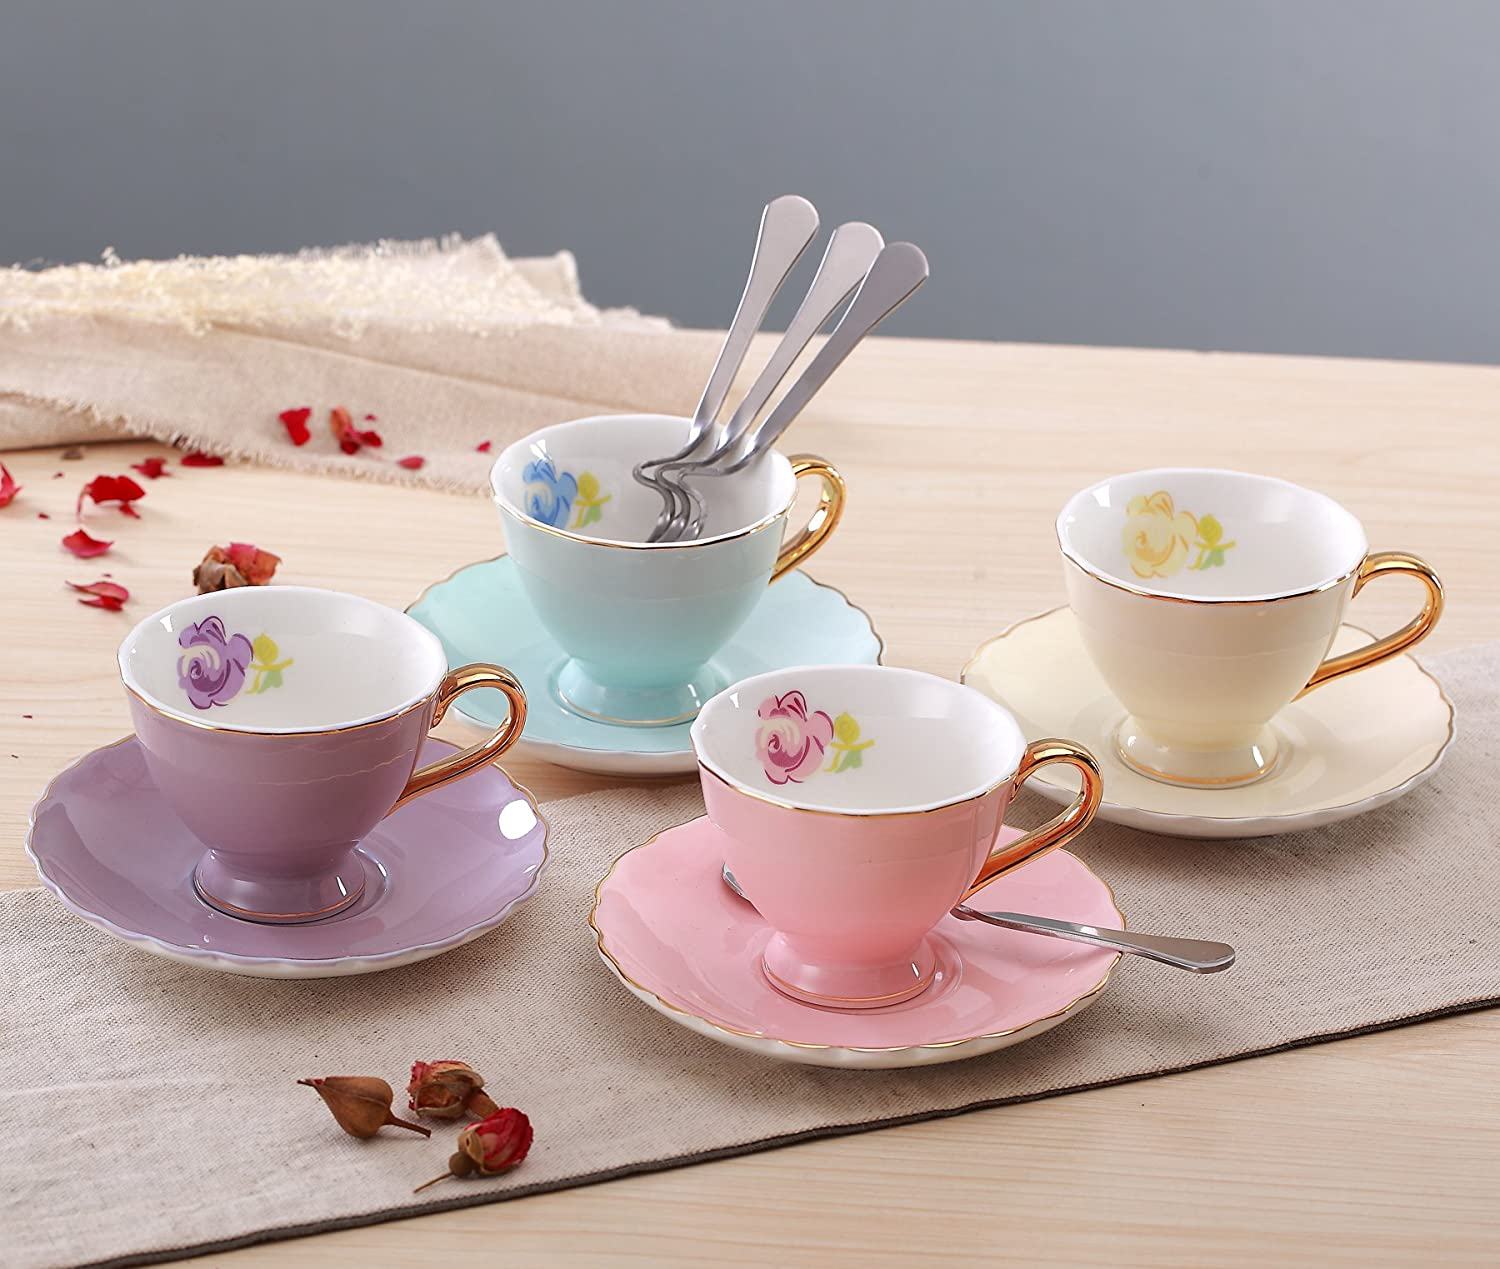 Jusalpha Porcelain Coffee Bar Espresso SMALL Cups and Saucers Set, 3-Ounce FD-TCS02-4COLOR